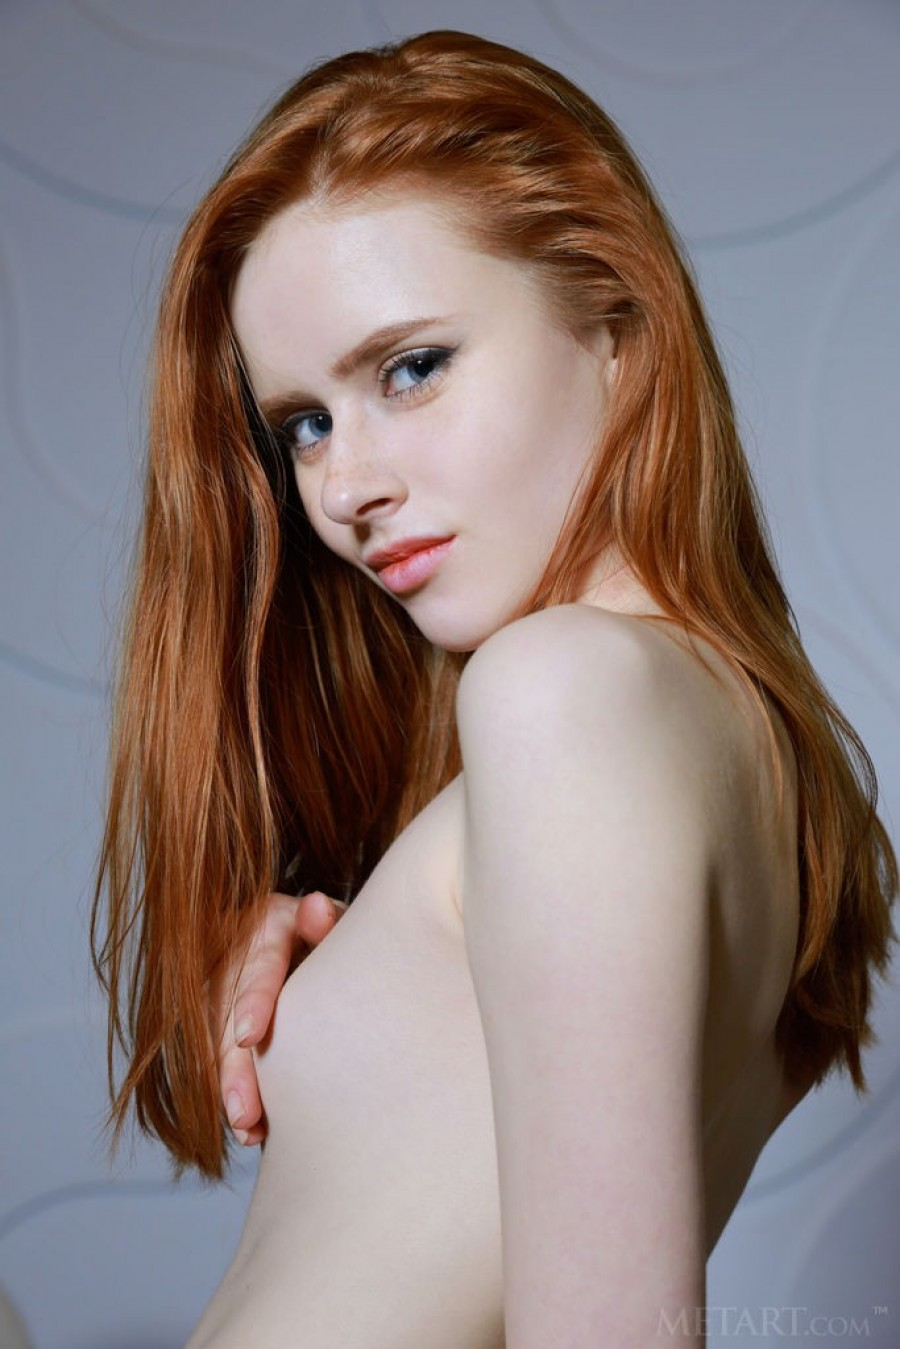 Redhead sweetie likes to pose